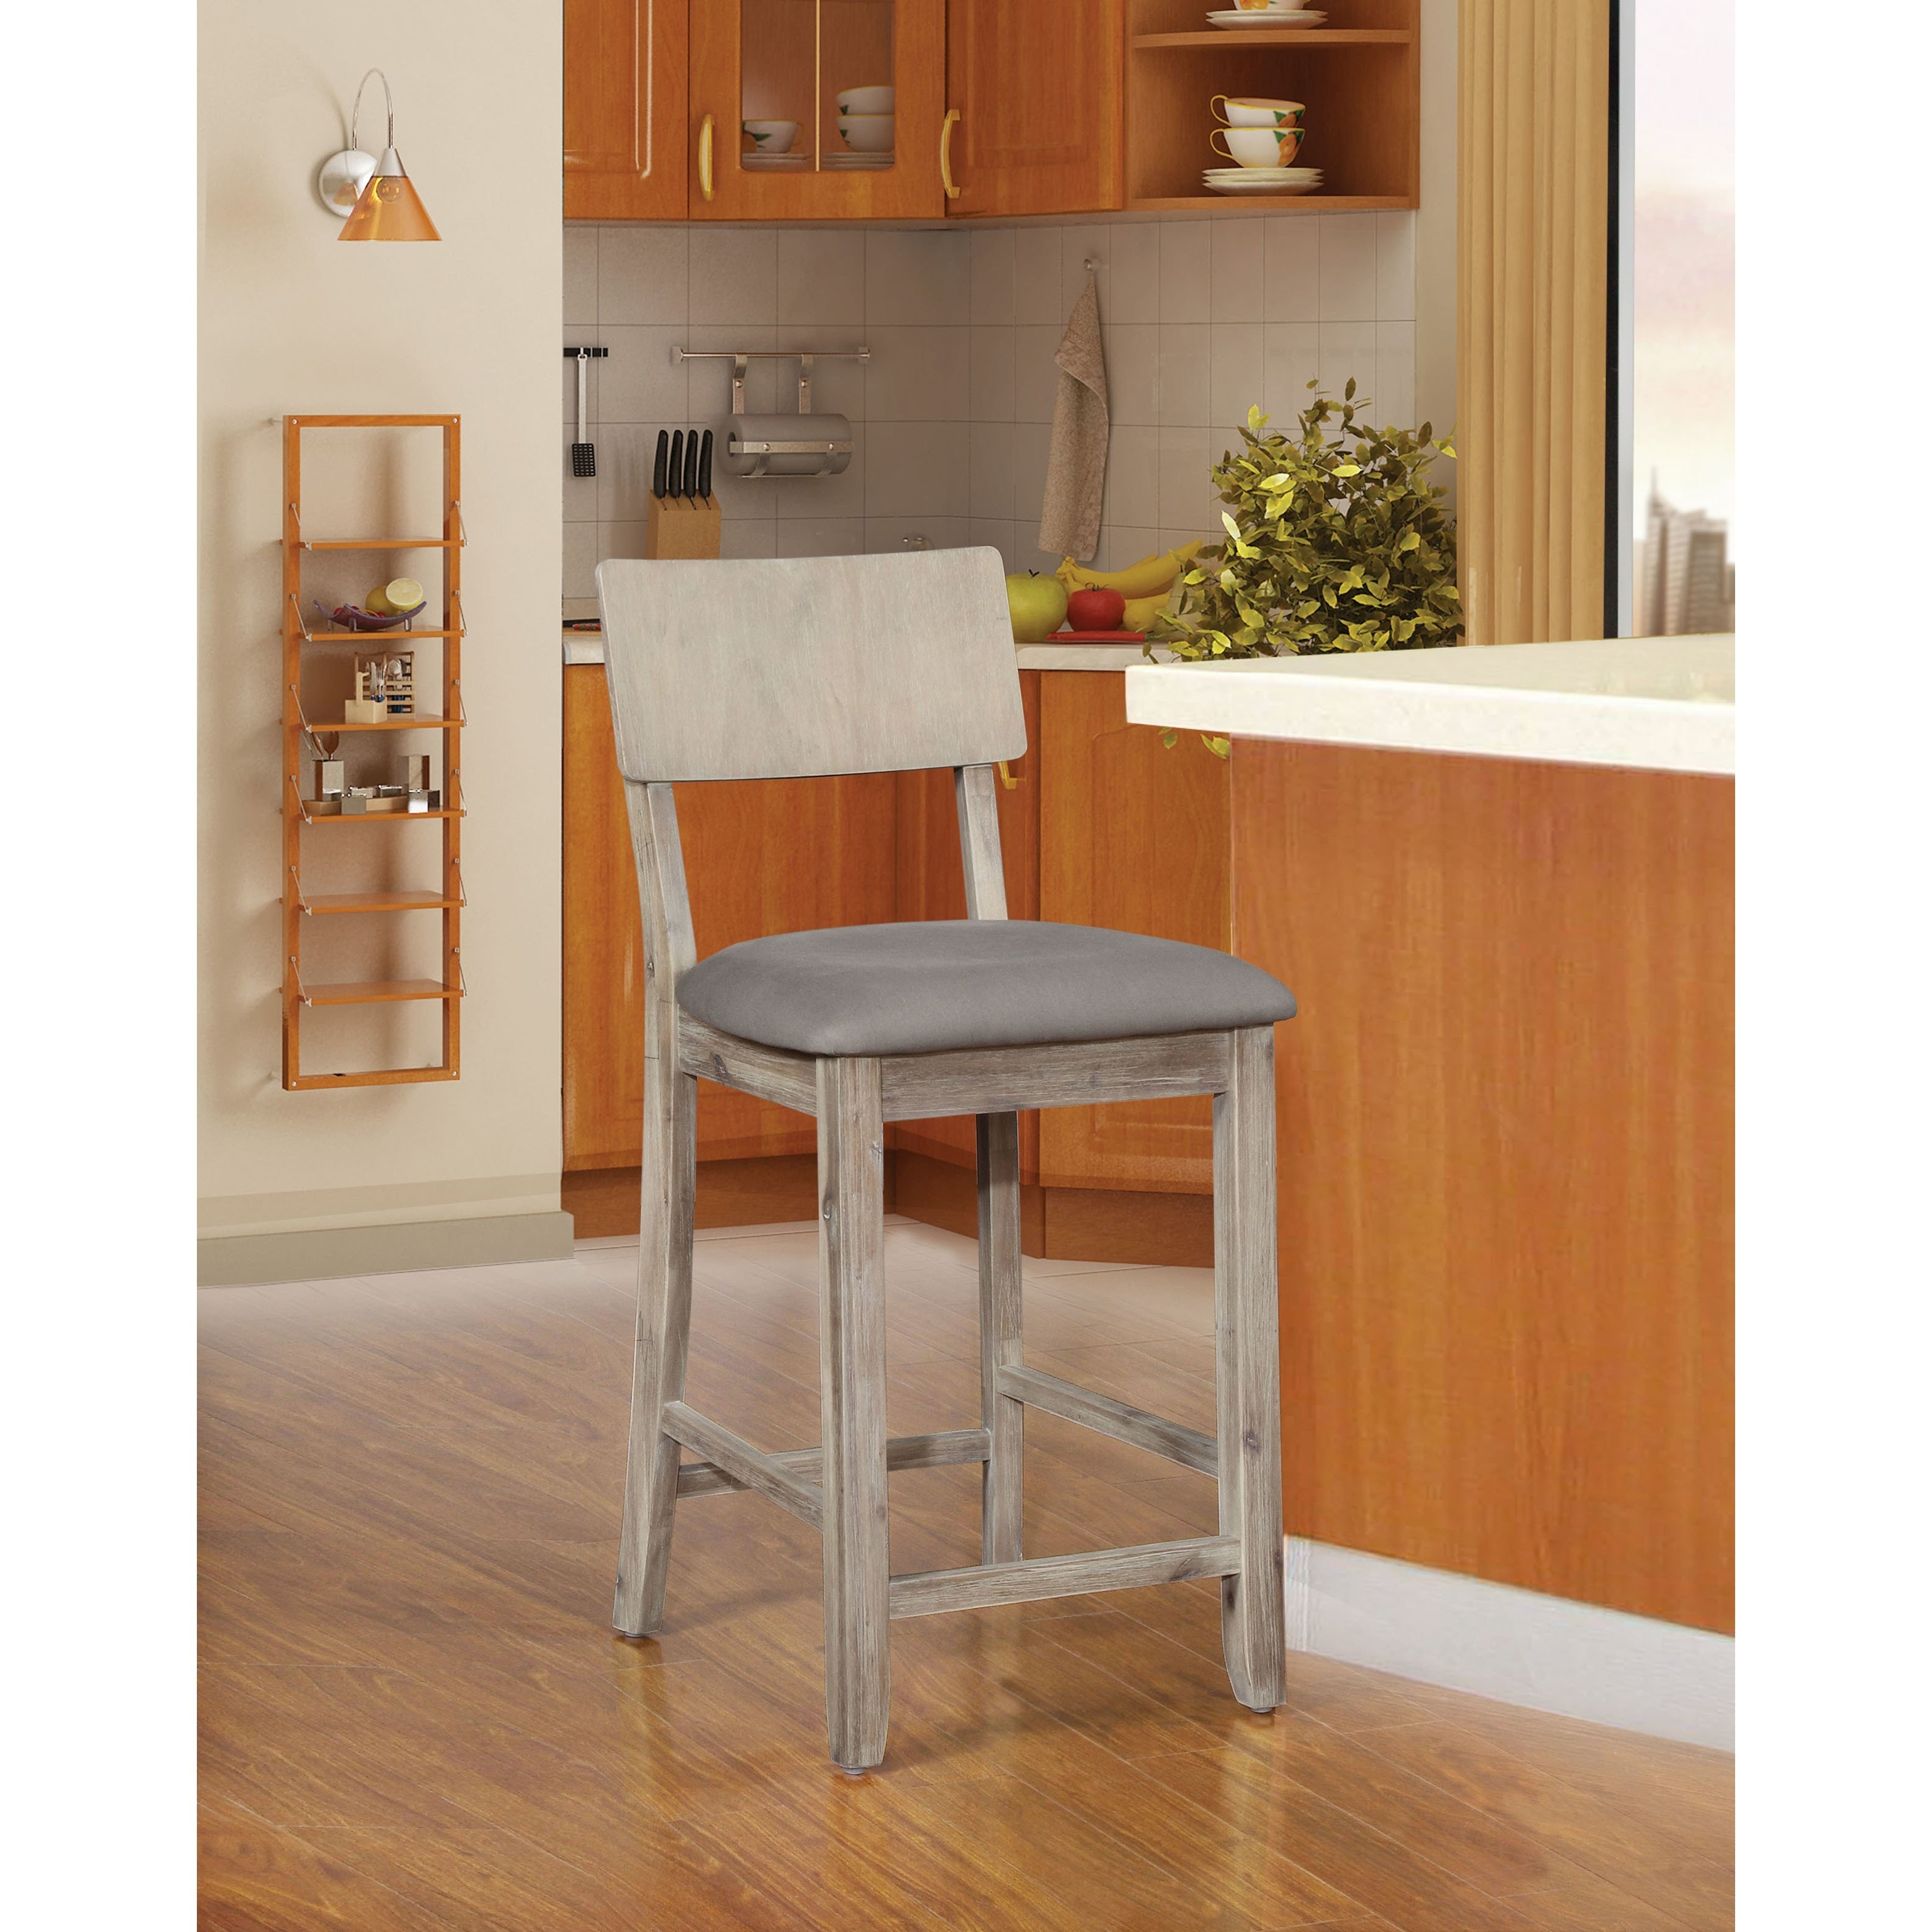 Laurent 7 Piece Counter Sets With Wood Counterstools Regarding Newest Shop Loren Gray Wash Counter Stool – On Sale – Free Shipping Today (View 7 of 25)